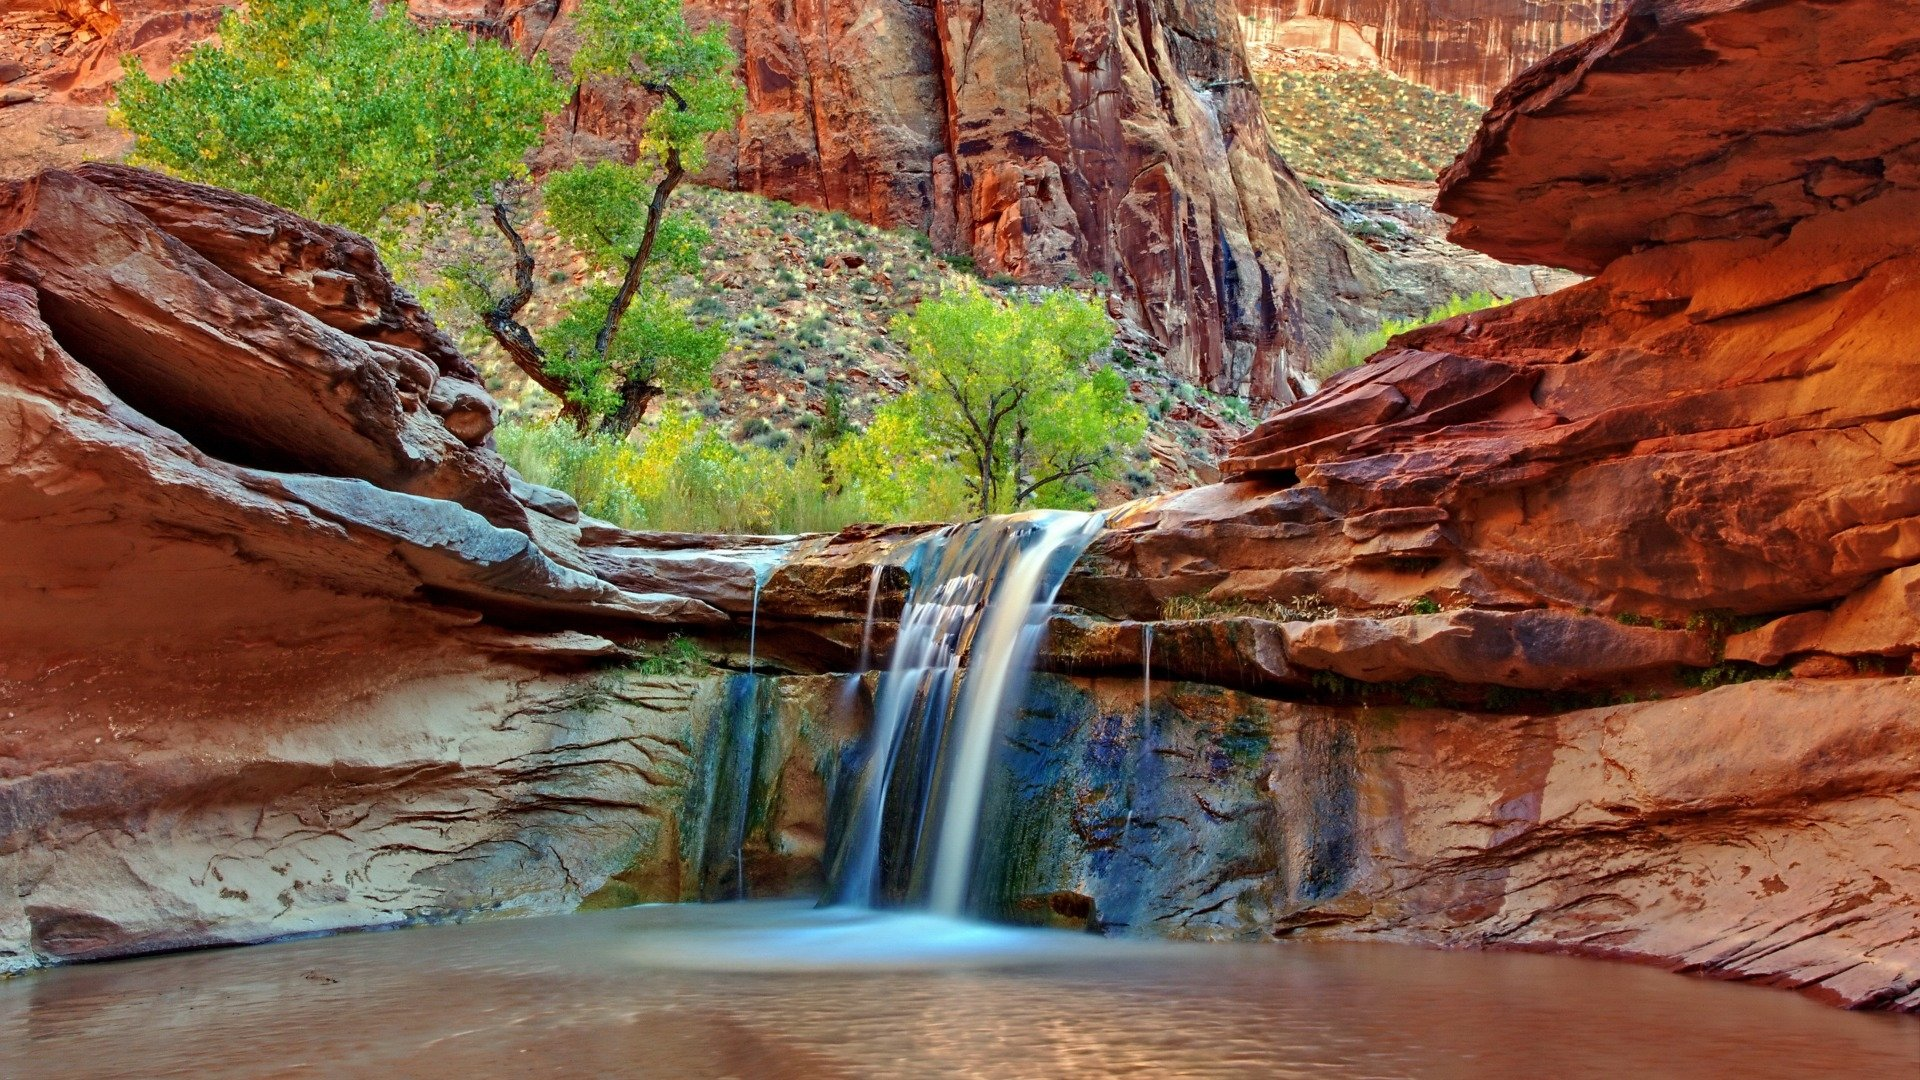 Earth - Waterfall  Earth Rock Canyon Wallpaper